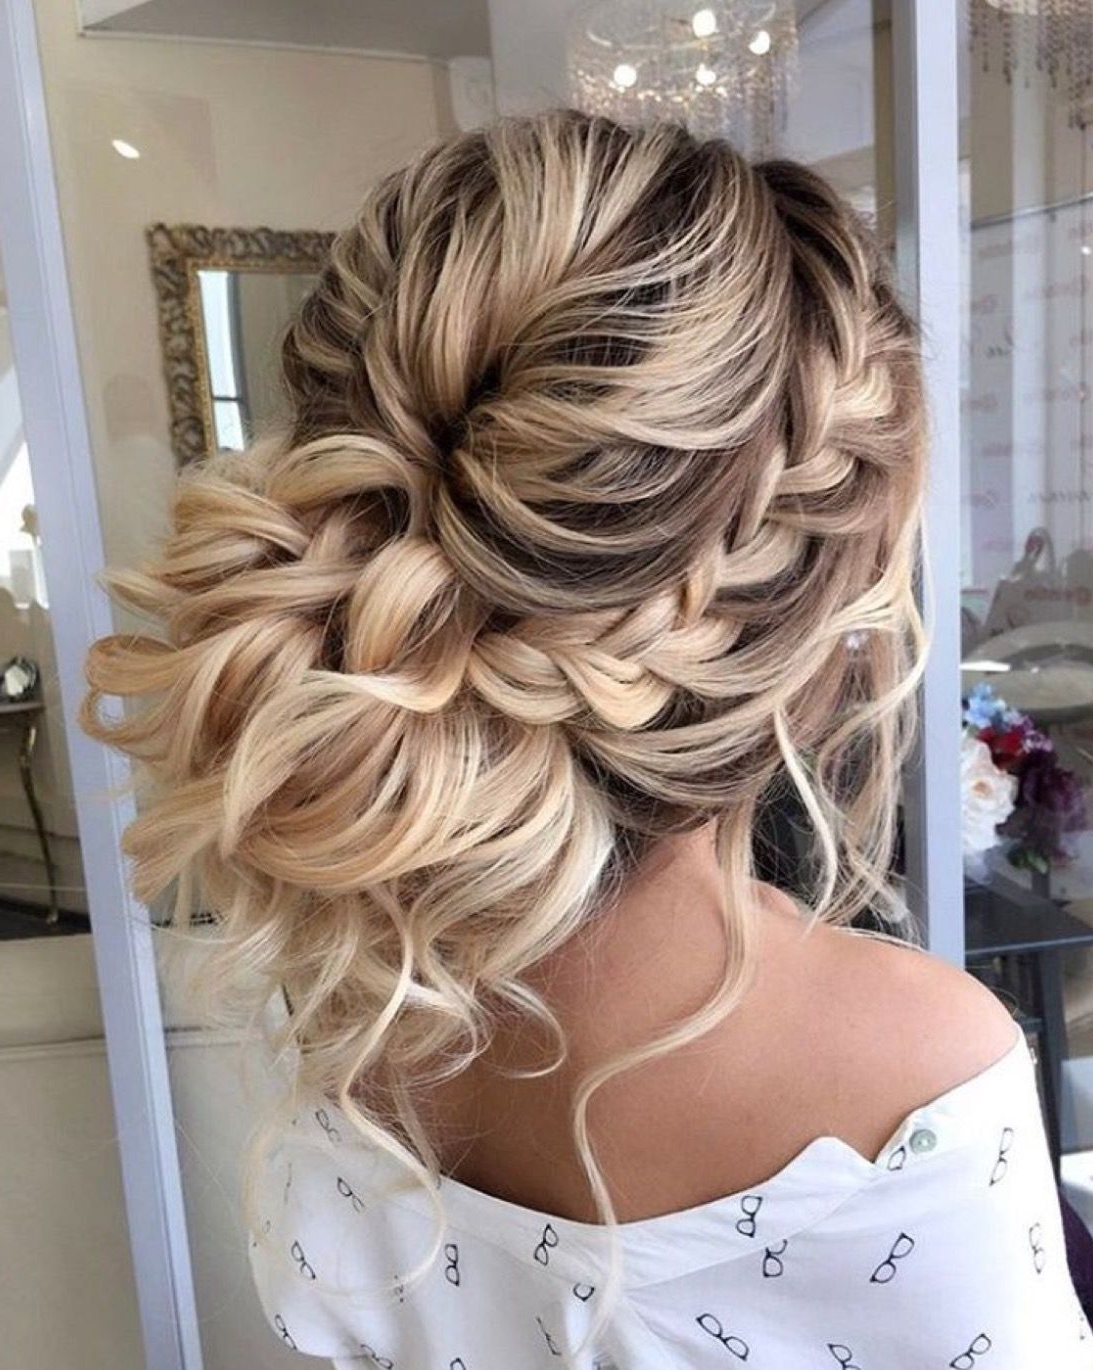 Widely Used Messy Buns Updo Bridal Hairstyles Intended For Low Messy Bun Updo With Curls And A Braid– Perfect Updo For A (View 20 of 20)